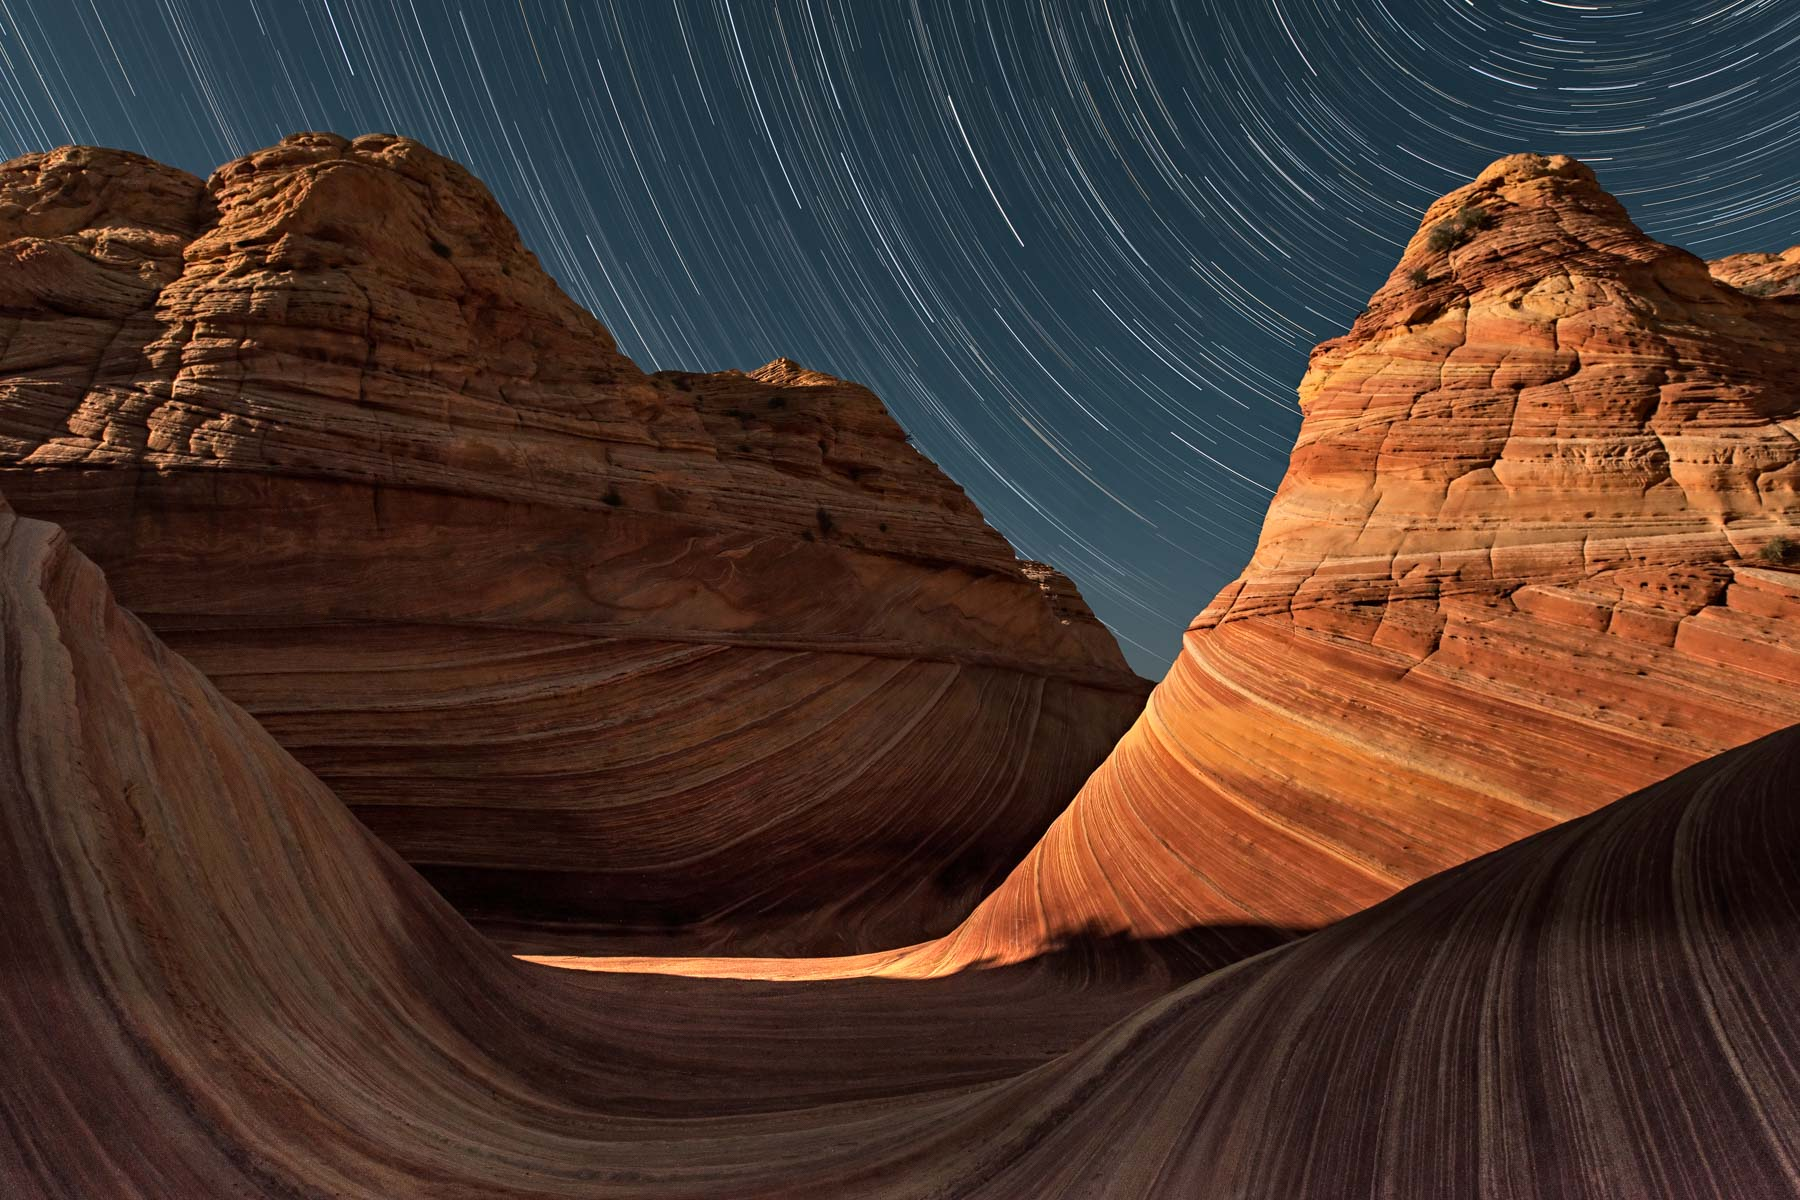 Star Trail over The Wave in Coyote Buttes North, Arizona